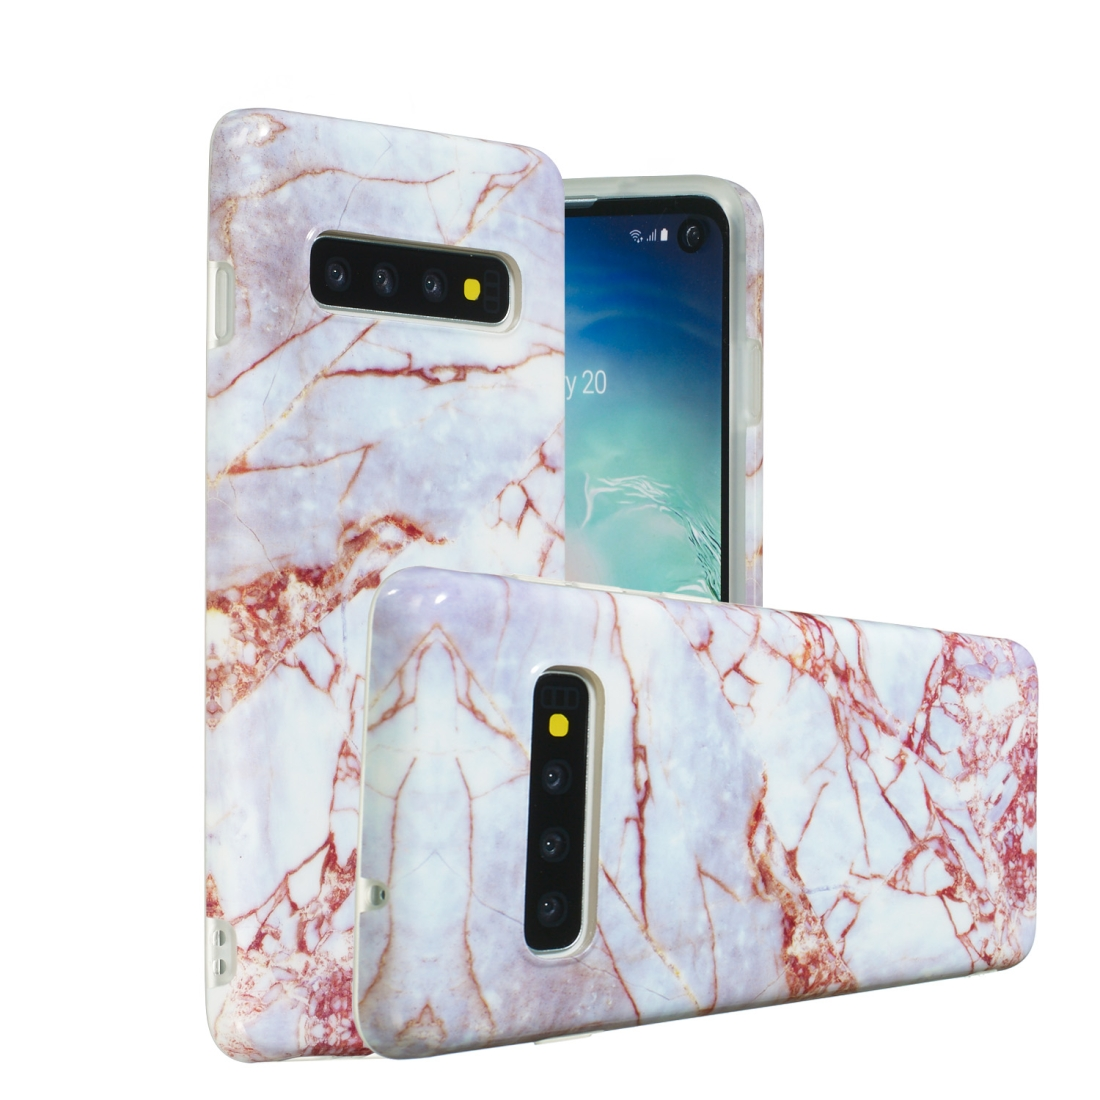 TPU Protective Case For Galaxy S10 Plus (Gravel)